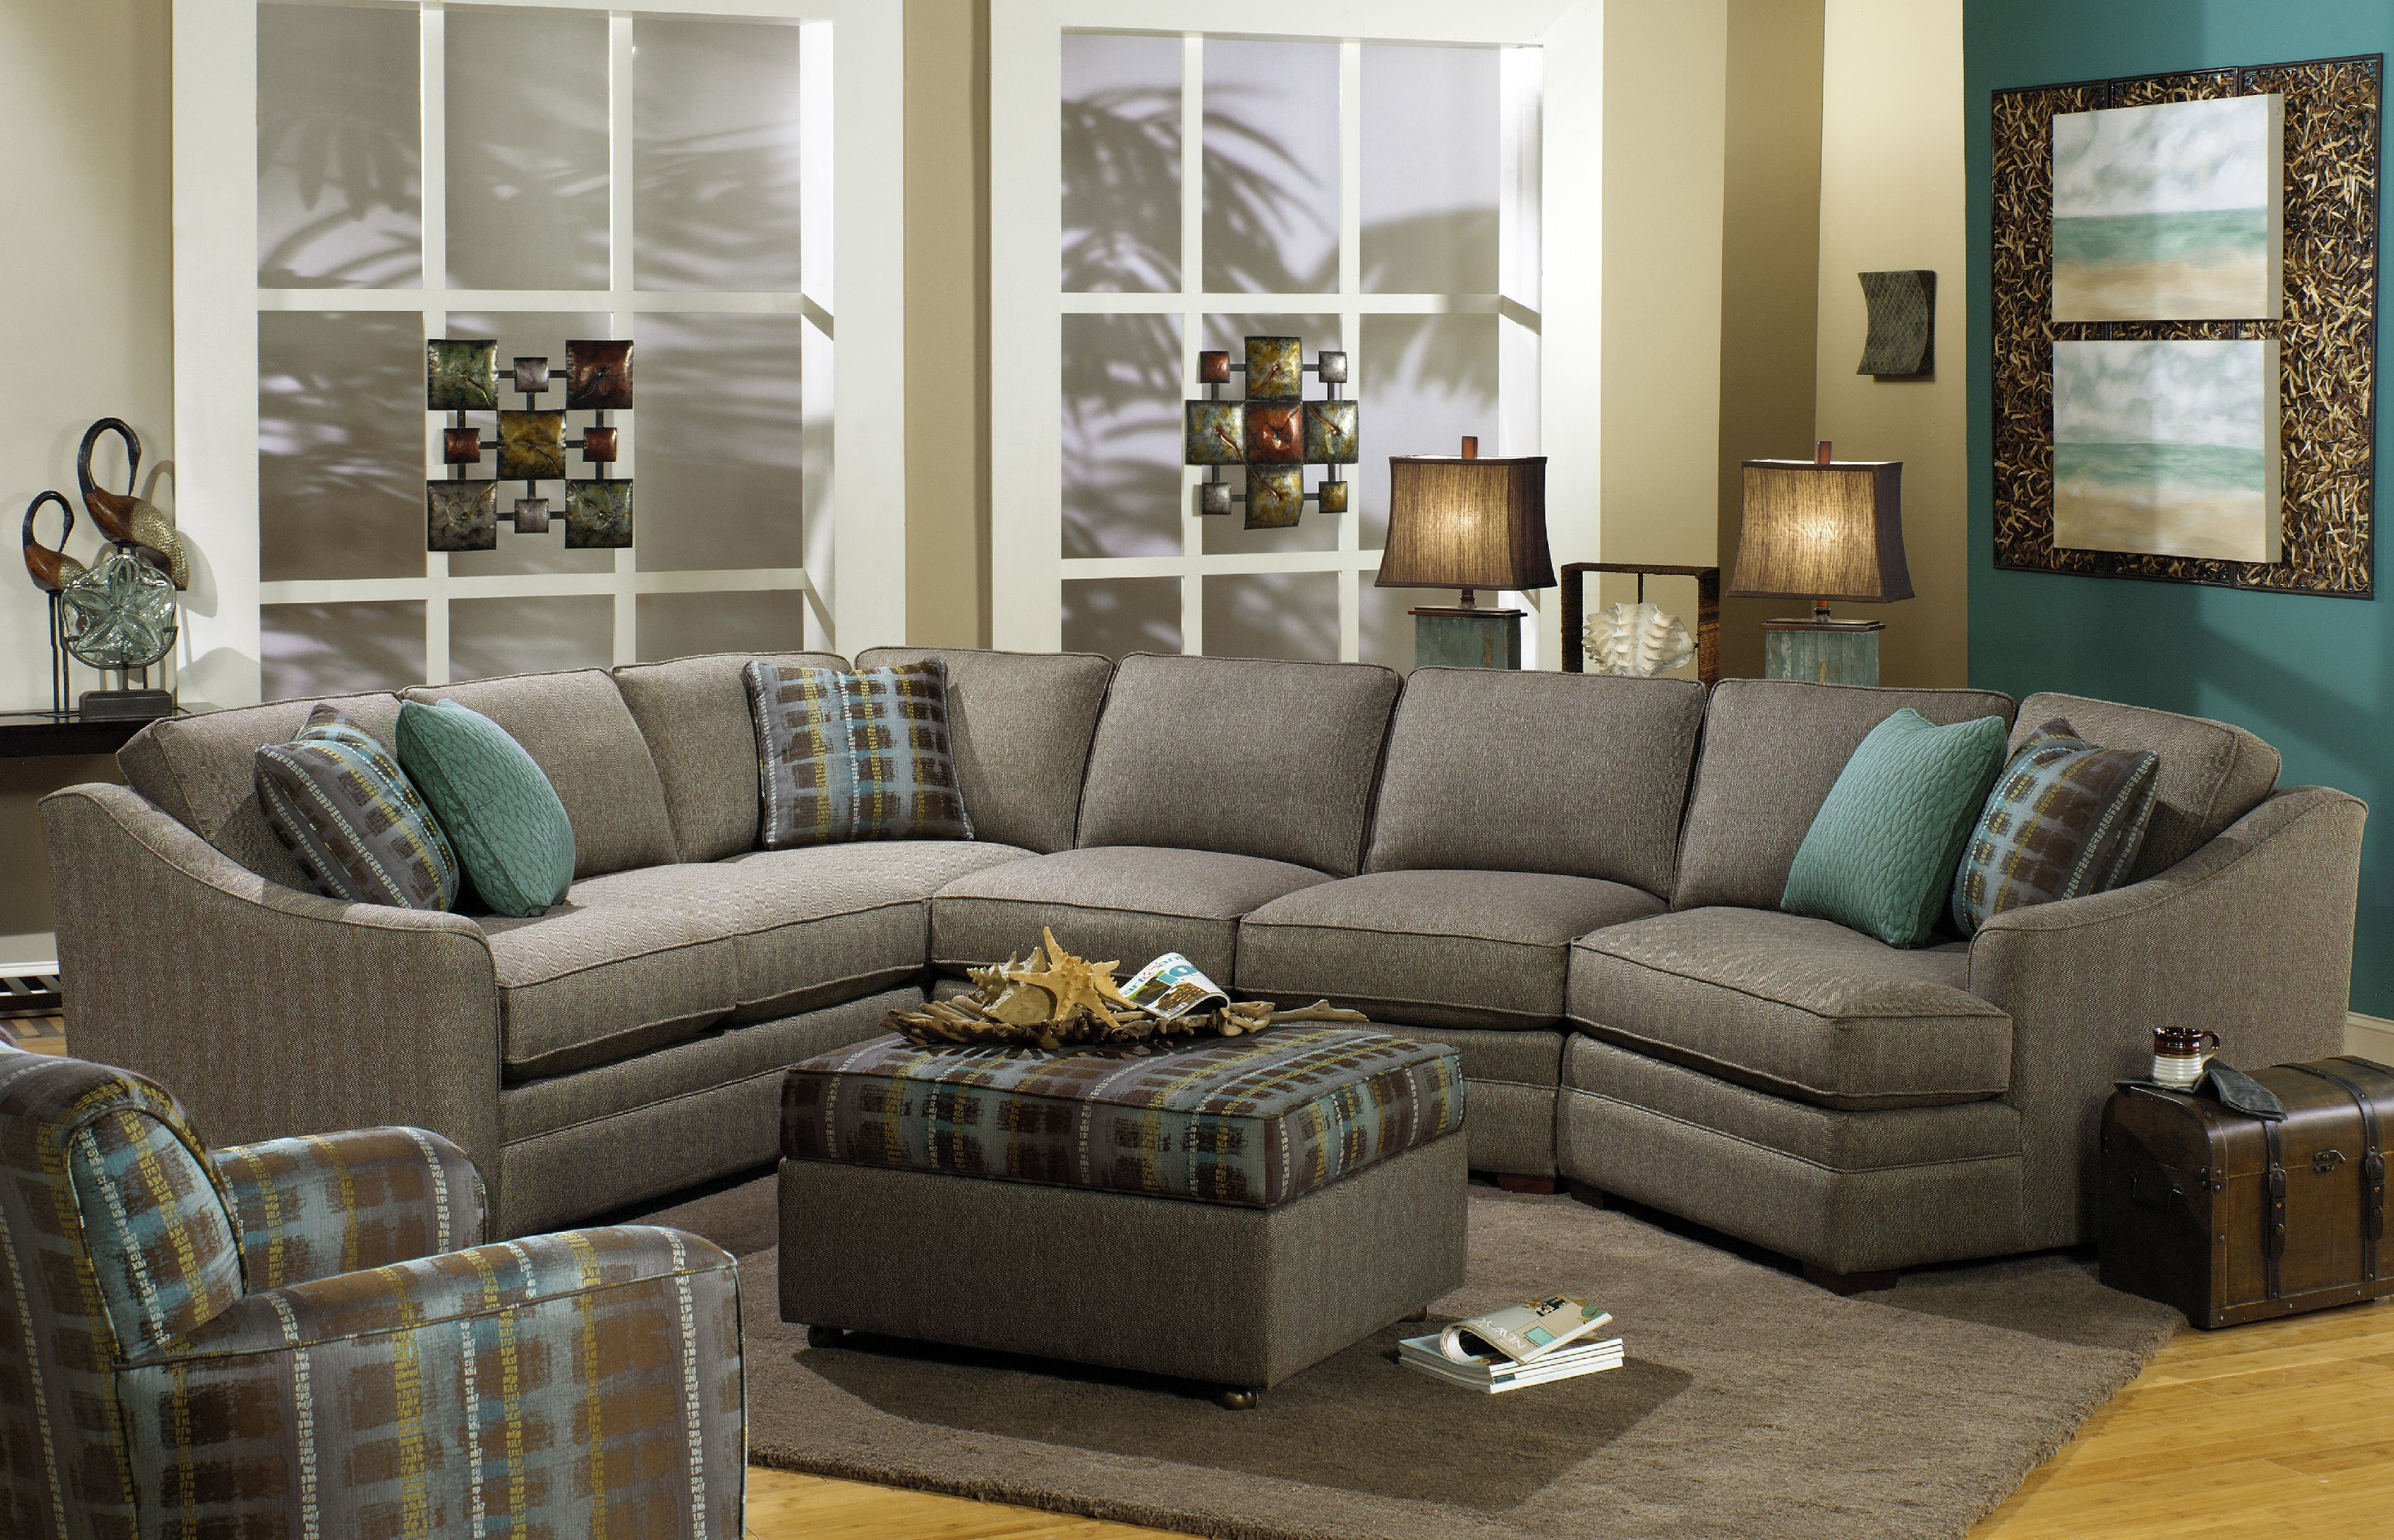 Charmant Hickorycraft Living Room Sectional F9431 Sect   Klopfenstein Home Rooms    Ft. Wayne, IN